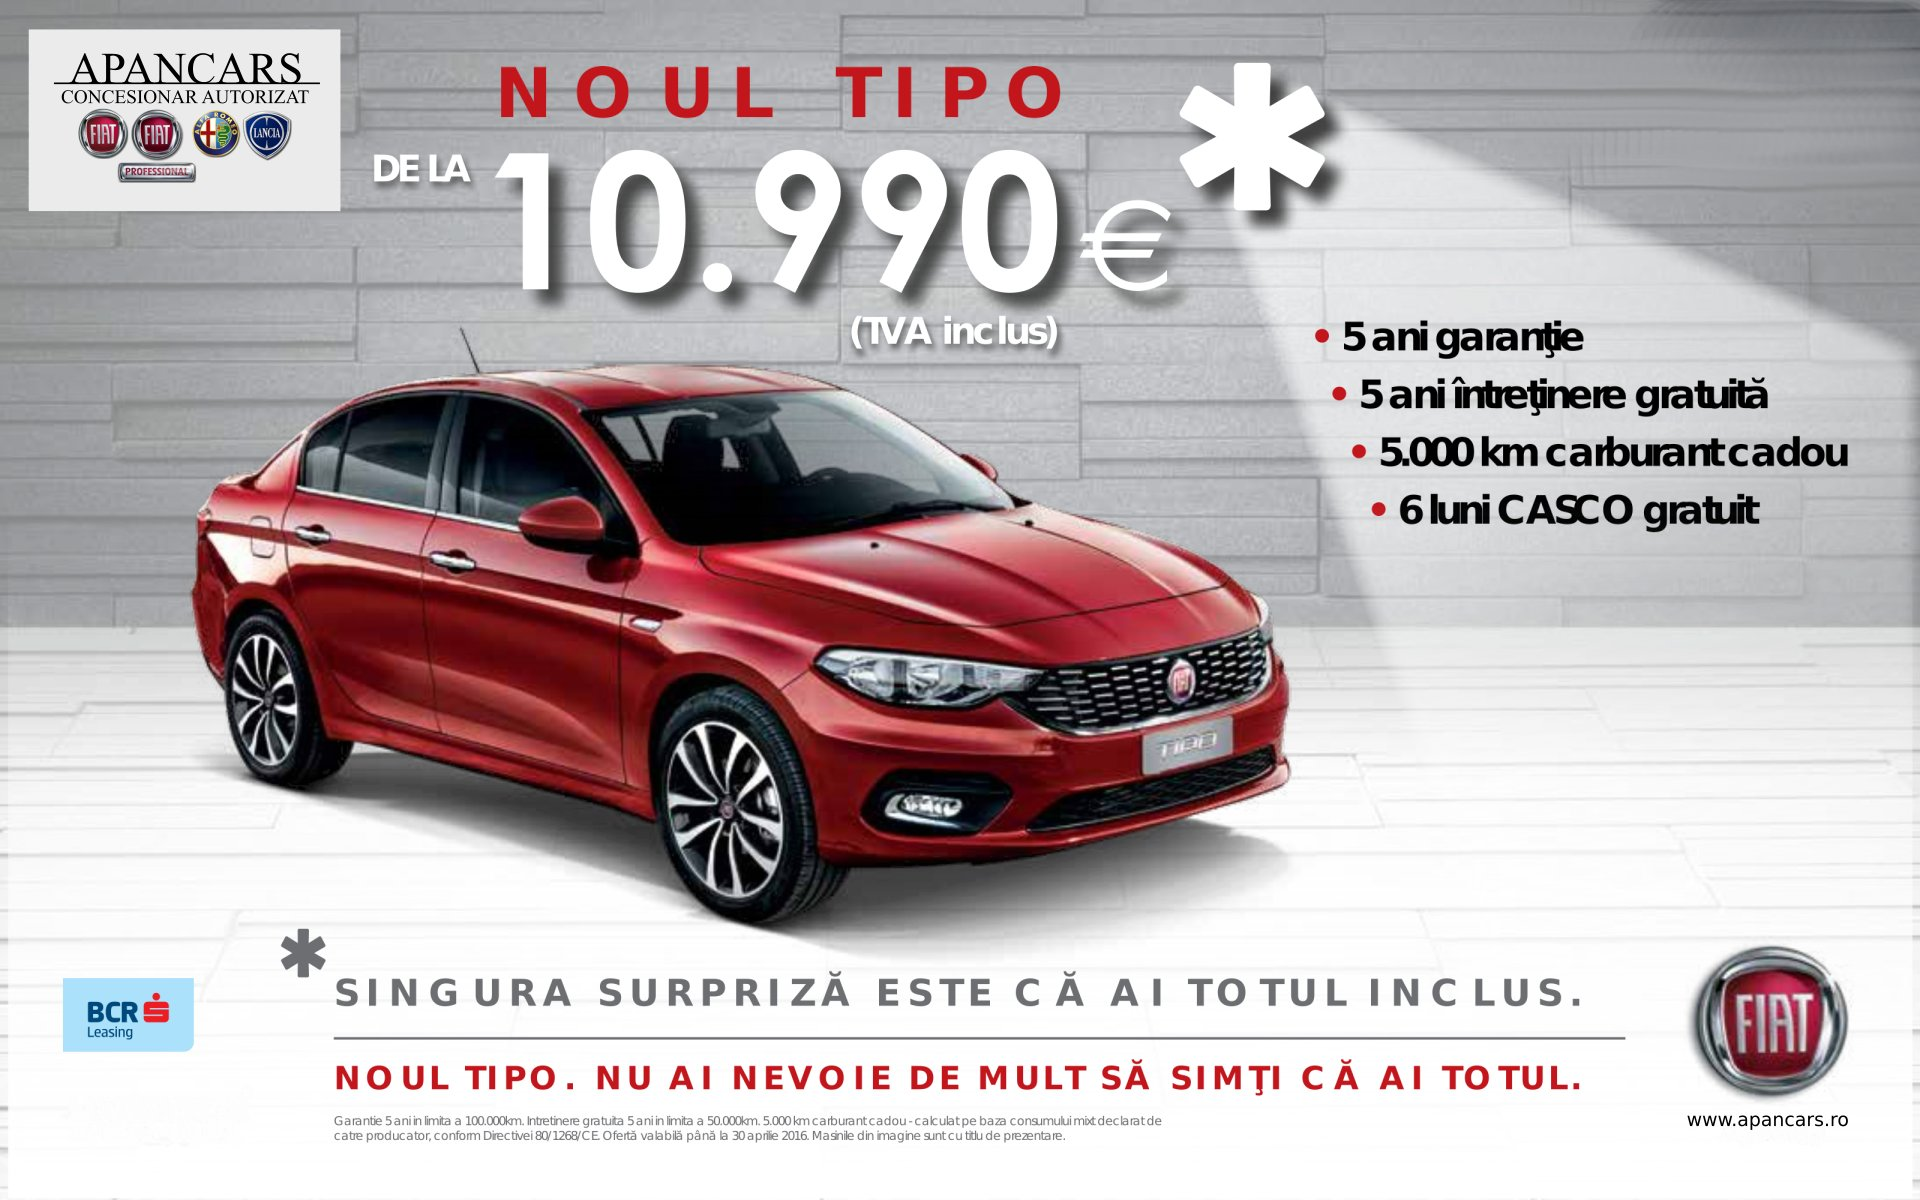 Noul Fiat Tipo